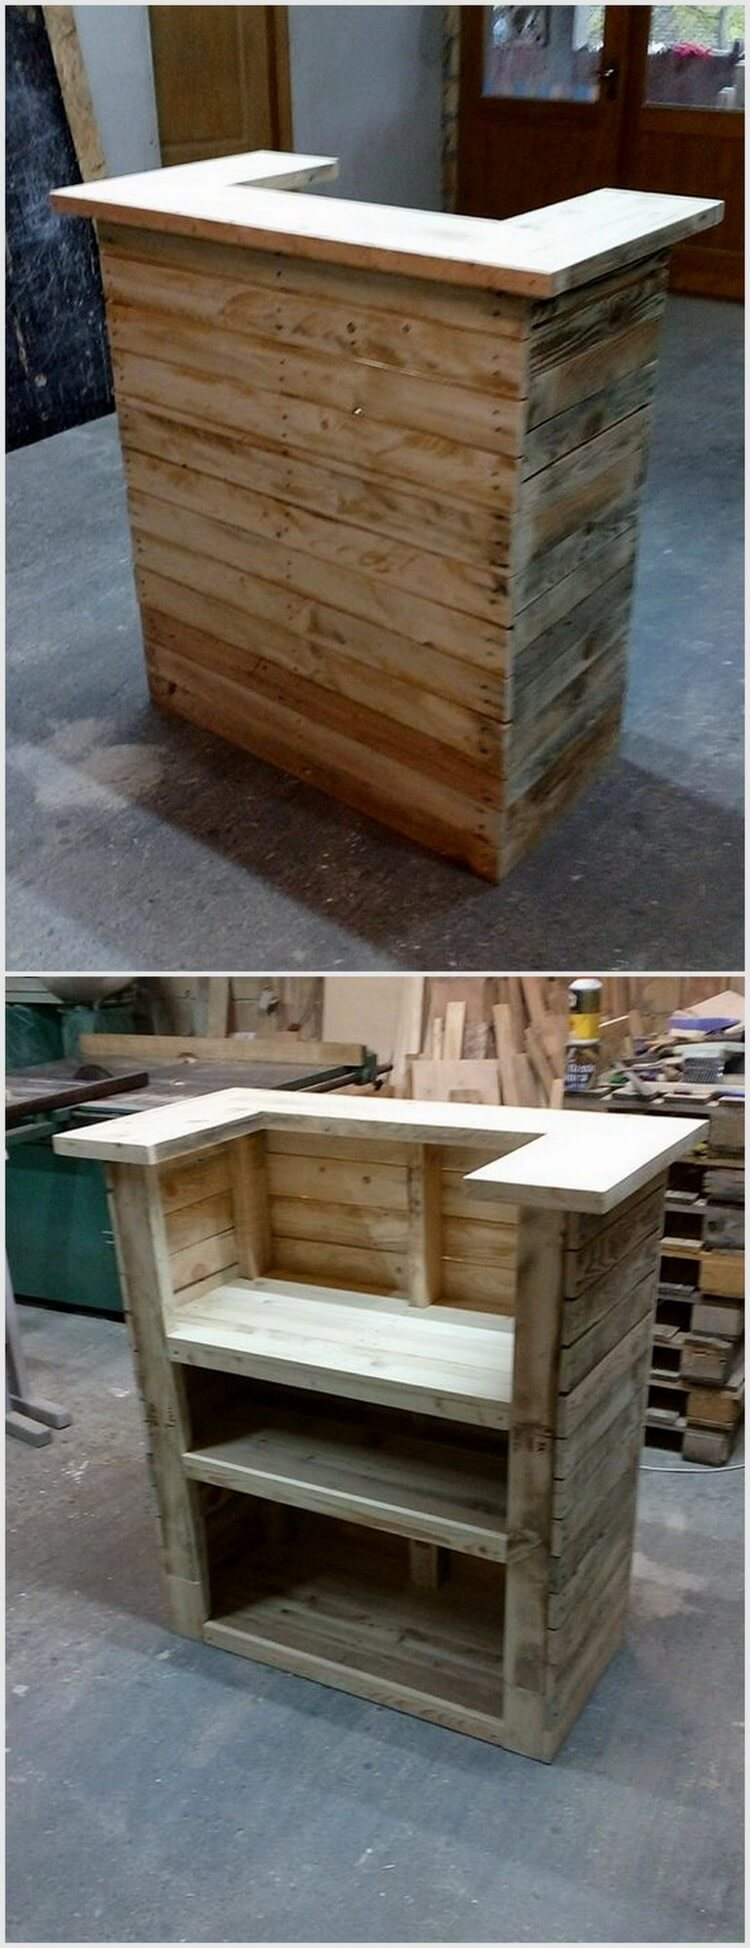 Shocking Recycling Ideas For Shipping Wood Pallets Pallet Wood Projects